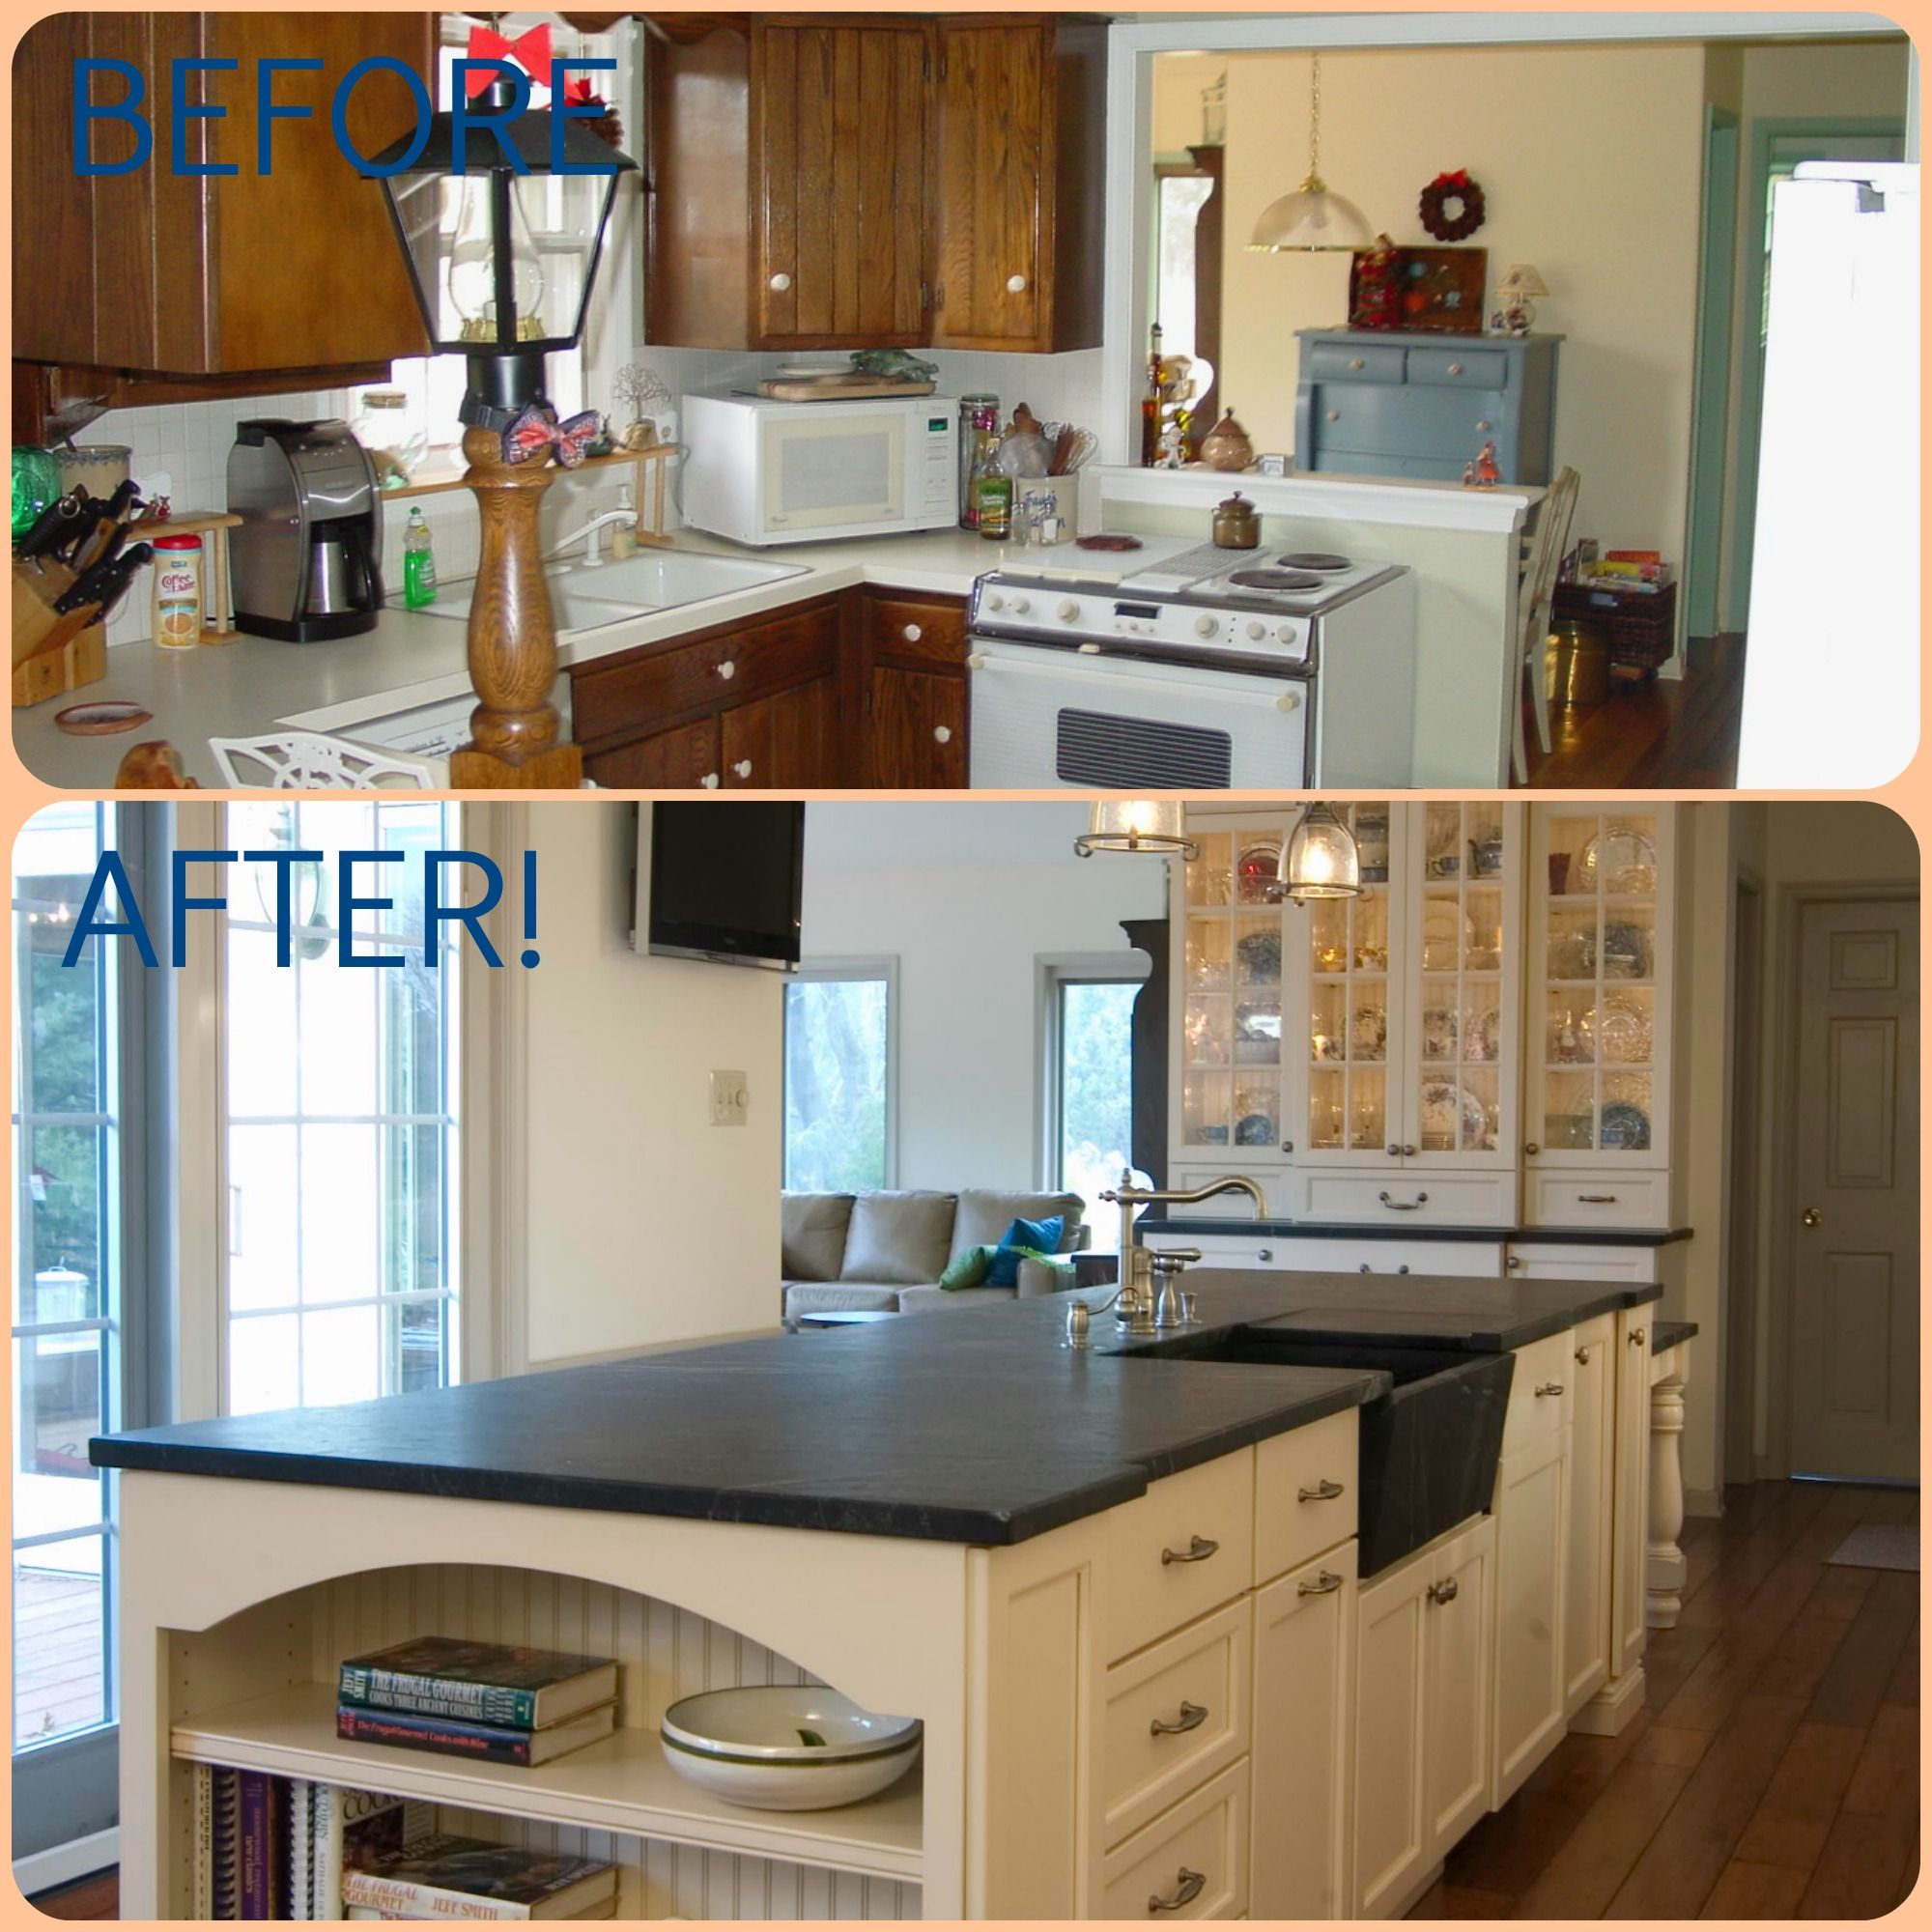 This Beautiful Kitchen Remodel By Meridian Construction Shows A Drastic Change From A Closed In